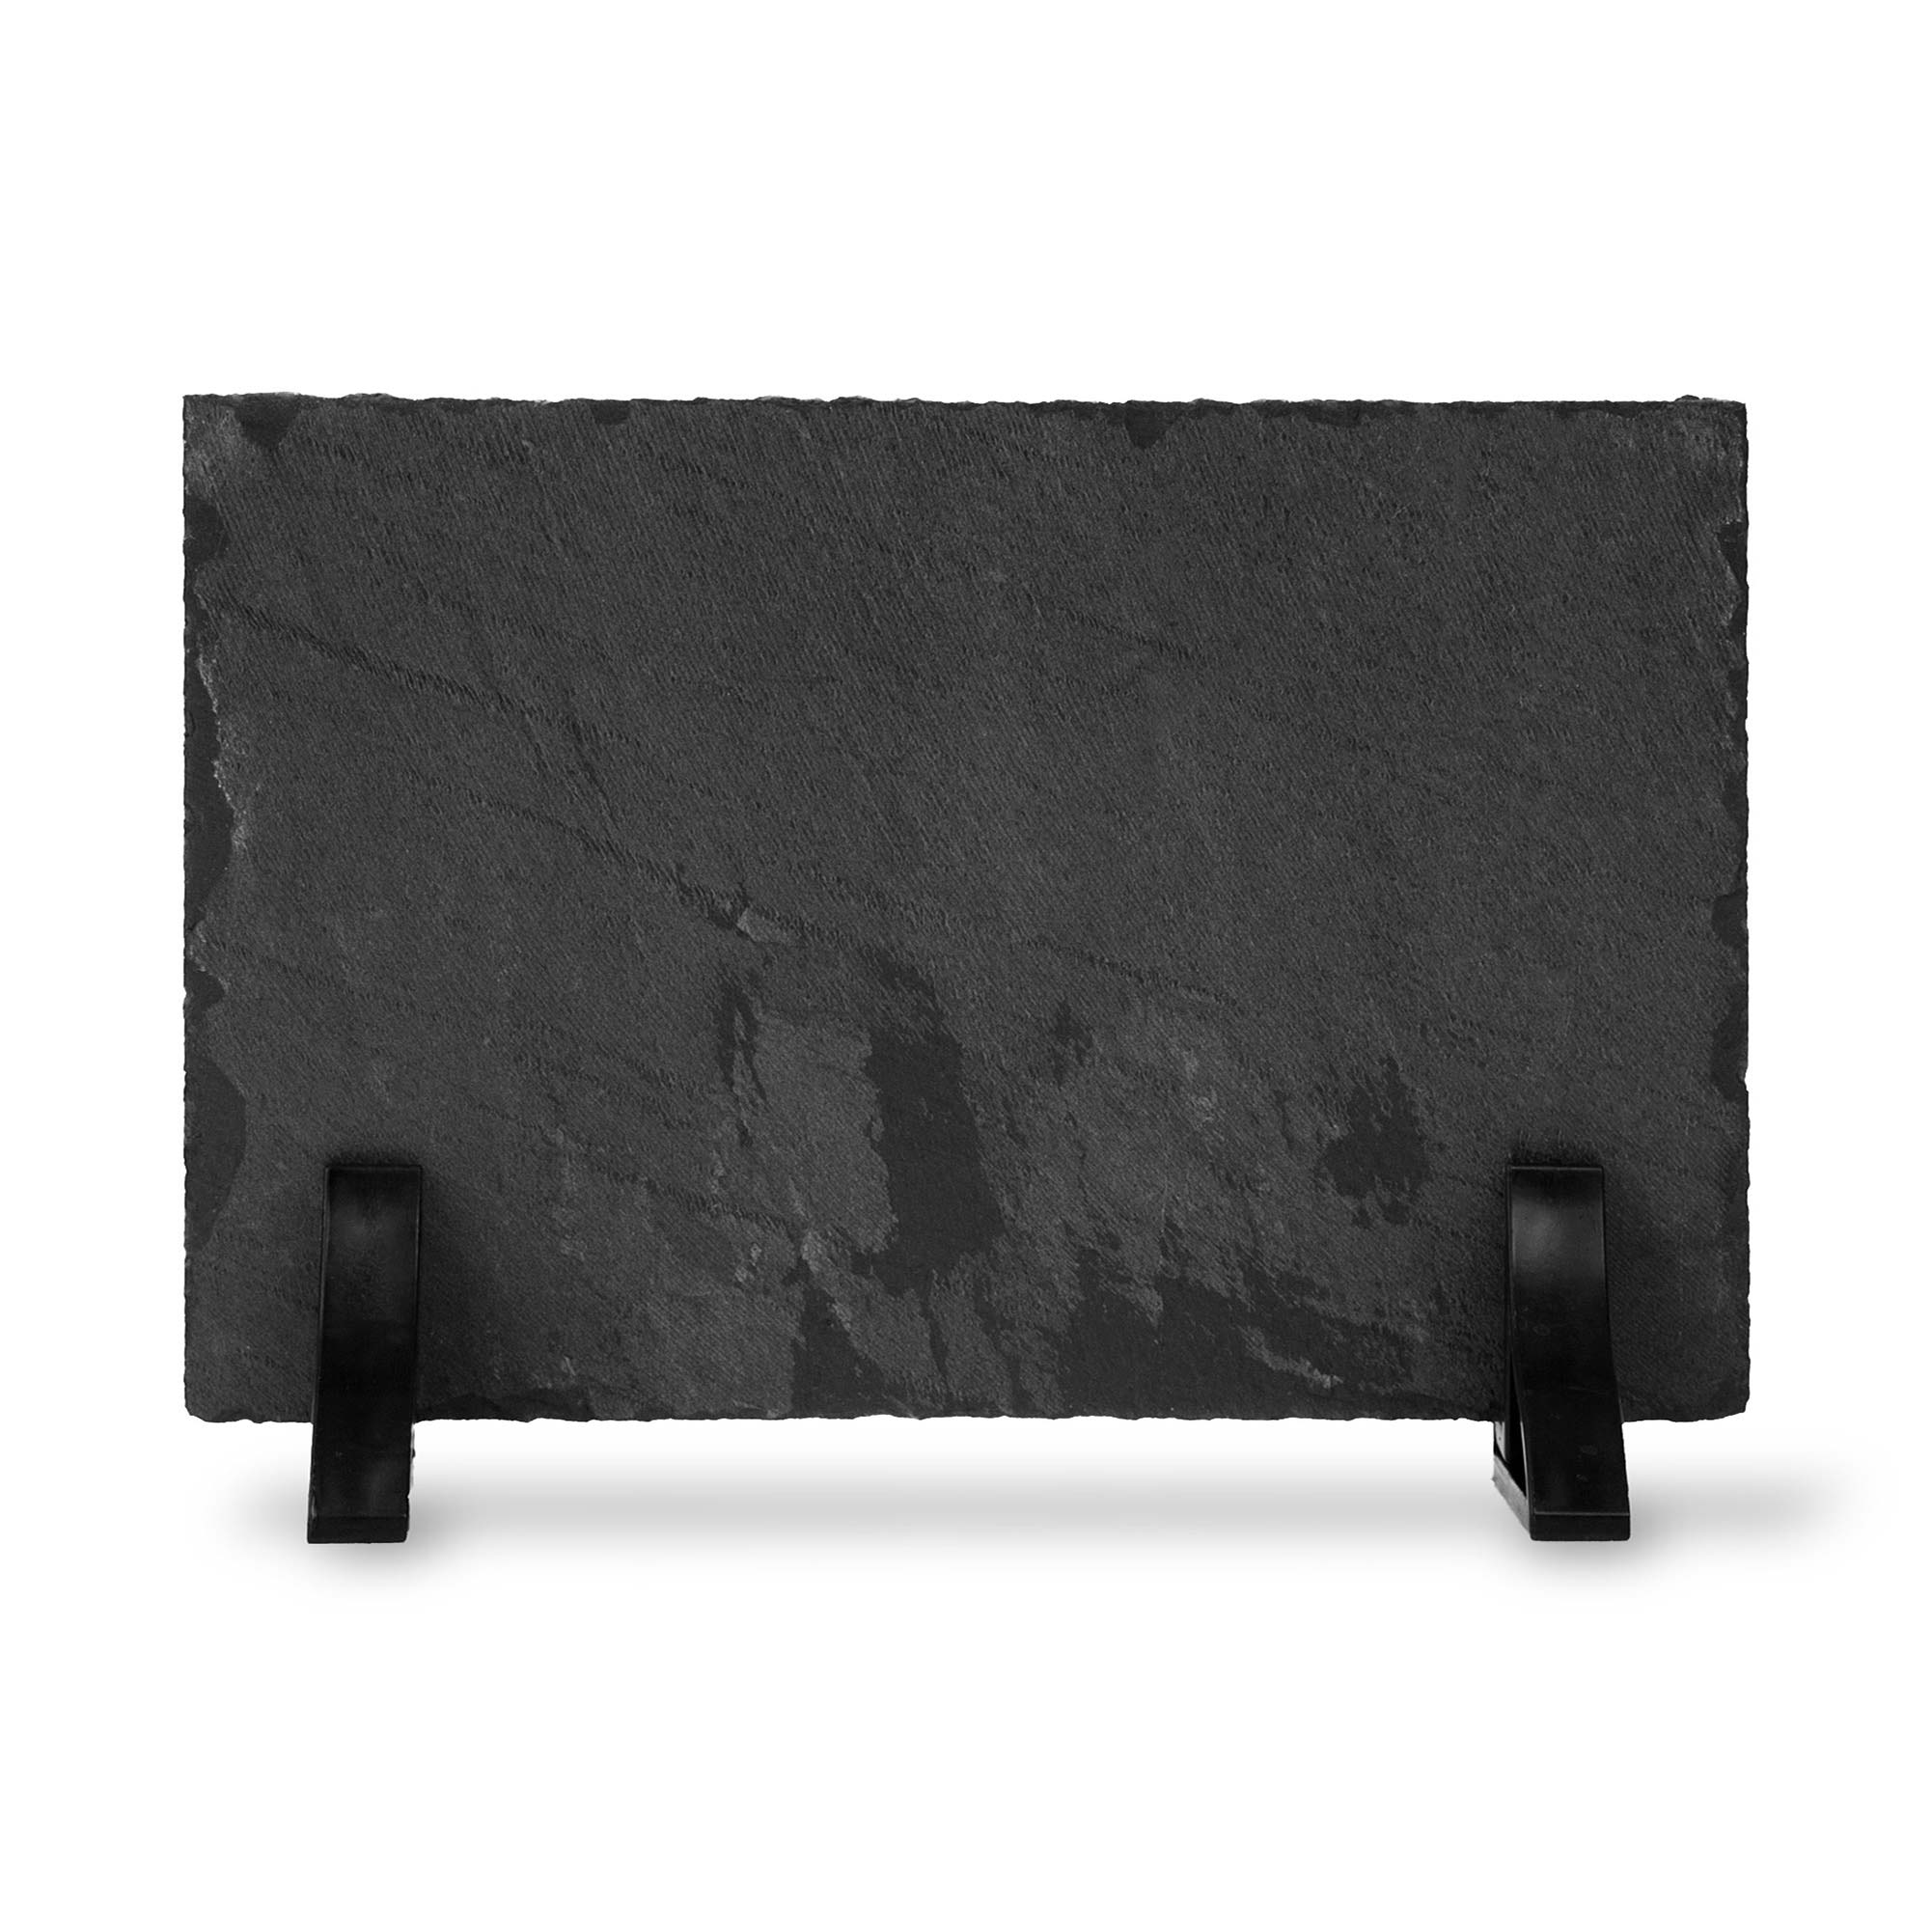 Architecture-Building-3-Rock-Slate-Picture-Frame-20x15-cm thumbnail 3